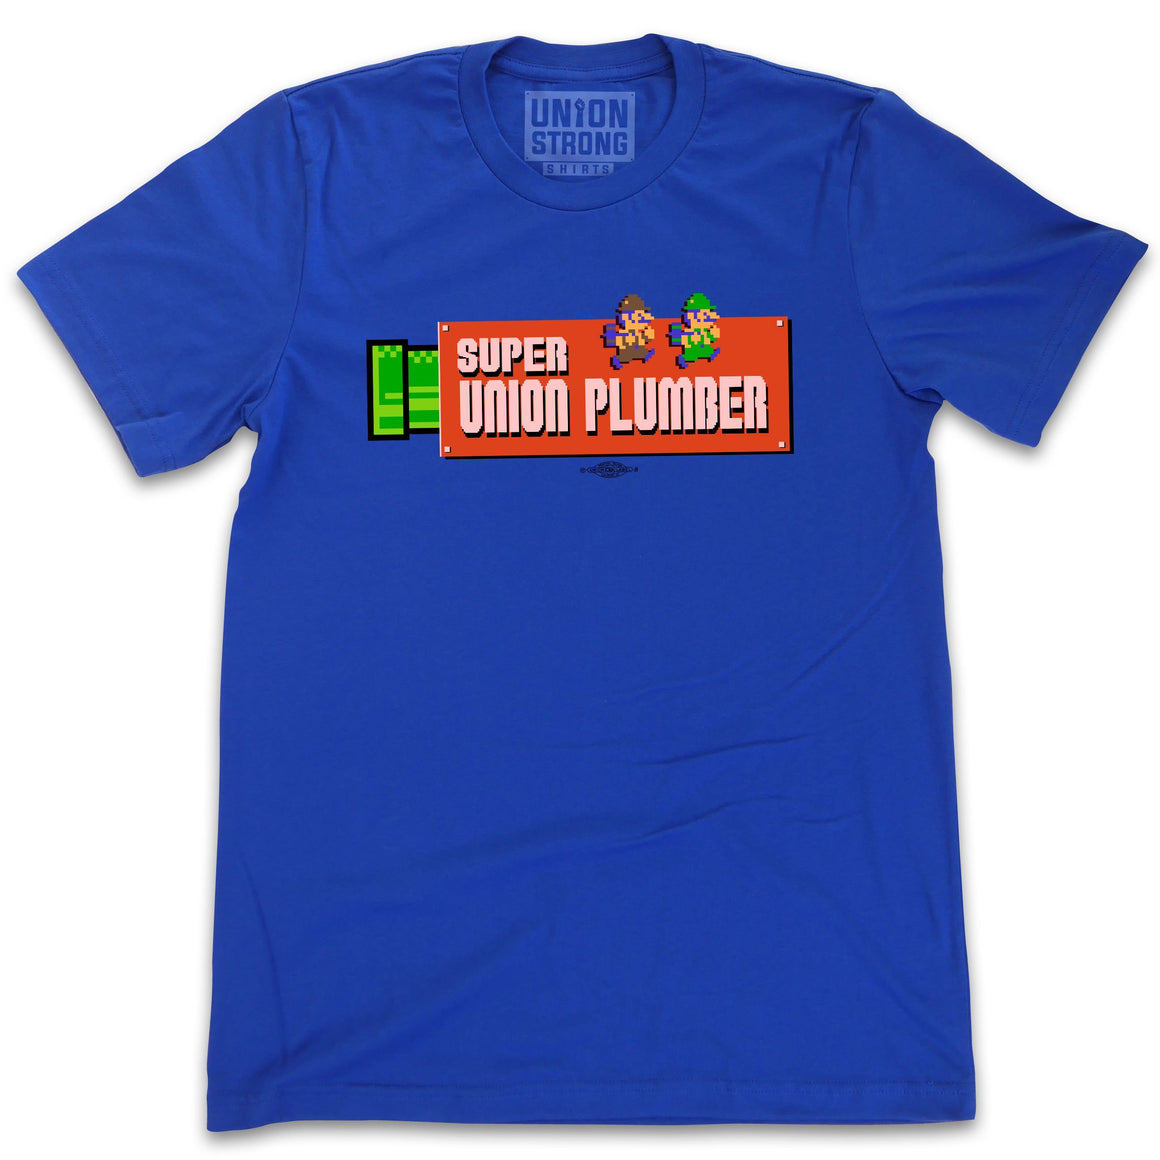 Super Union Plumber Shirts unionstrongshirts